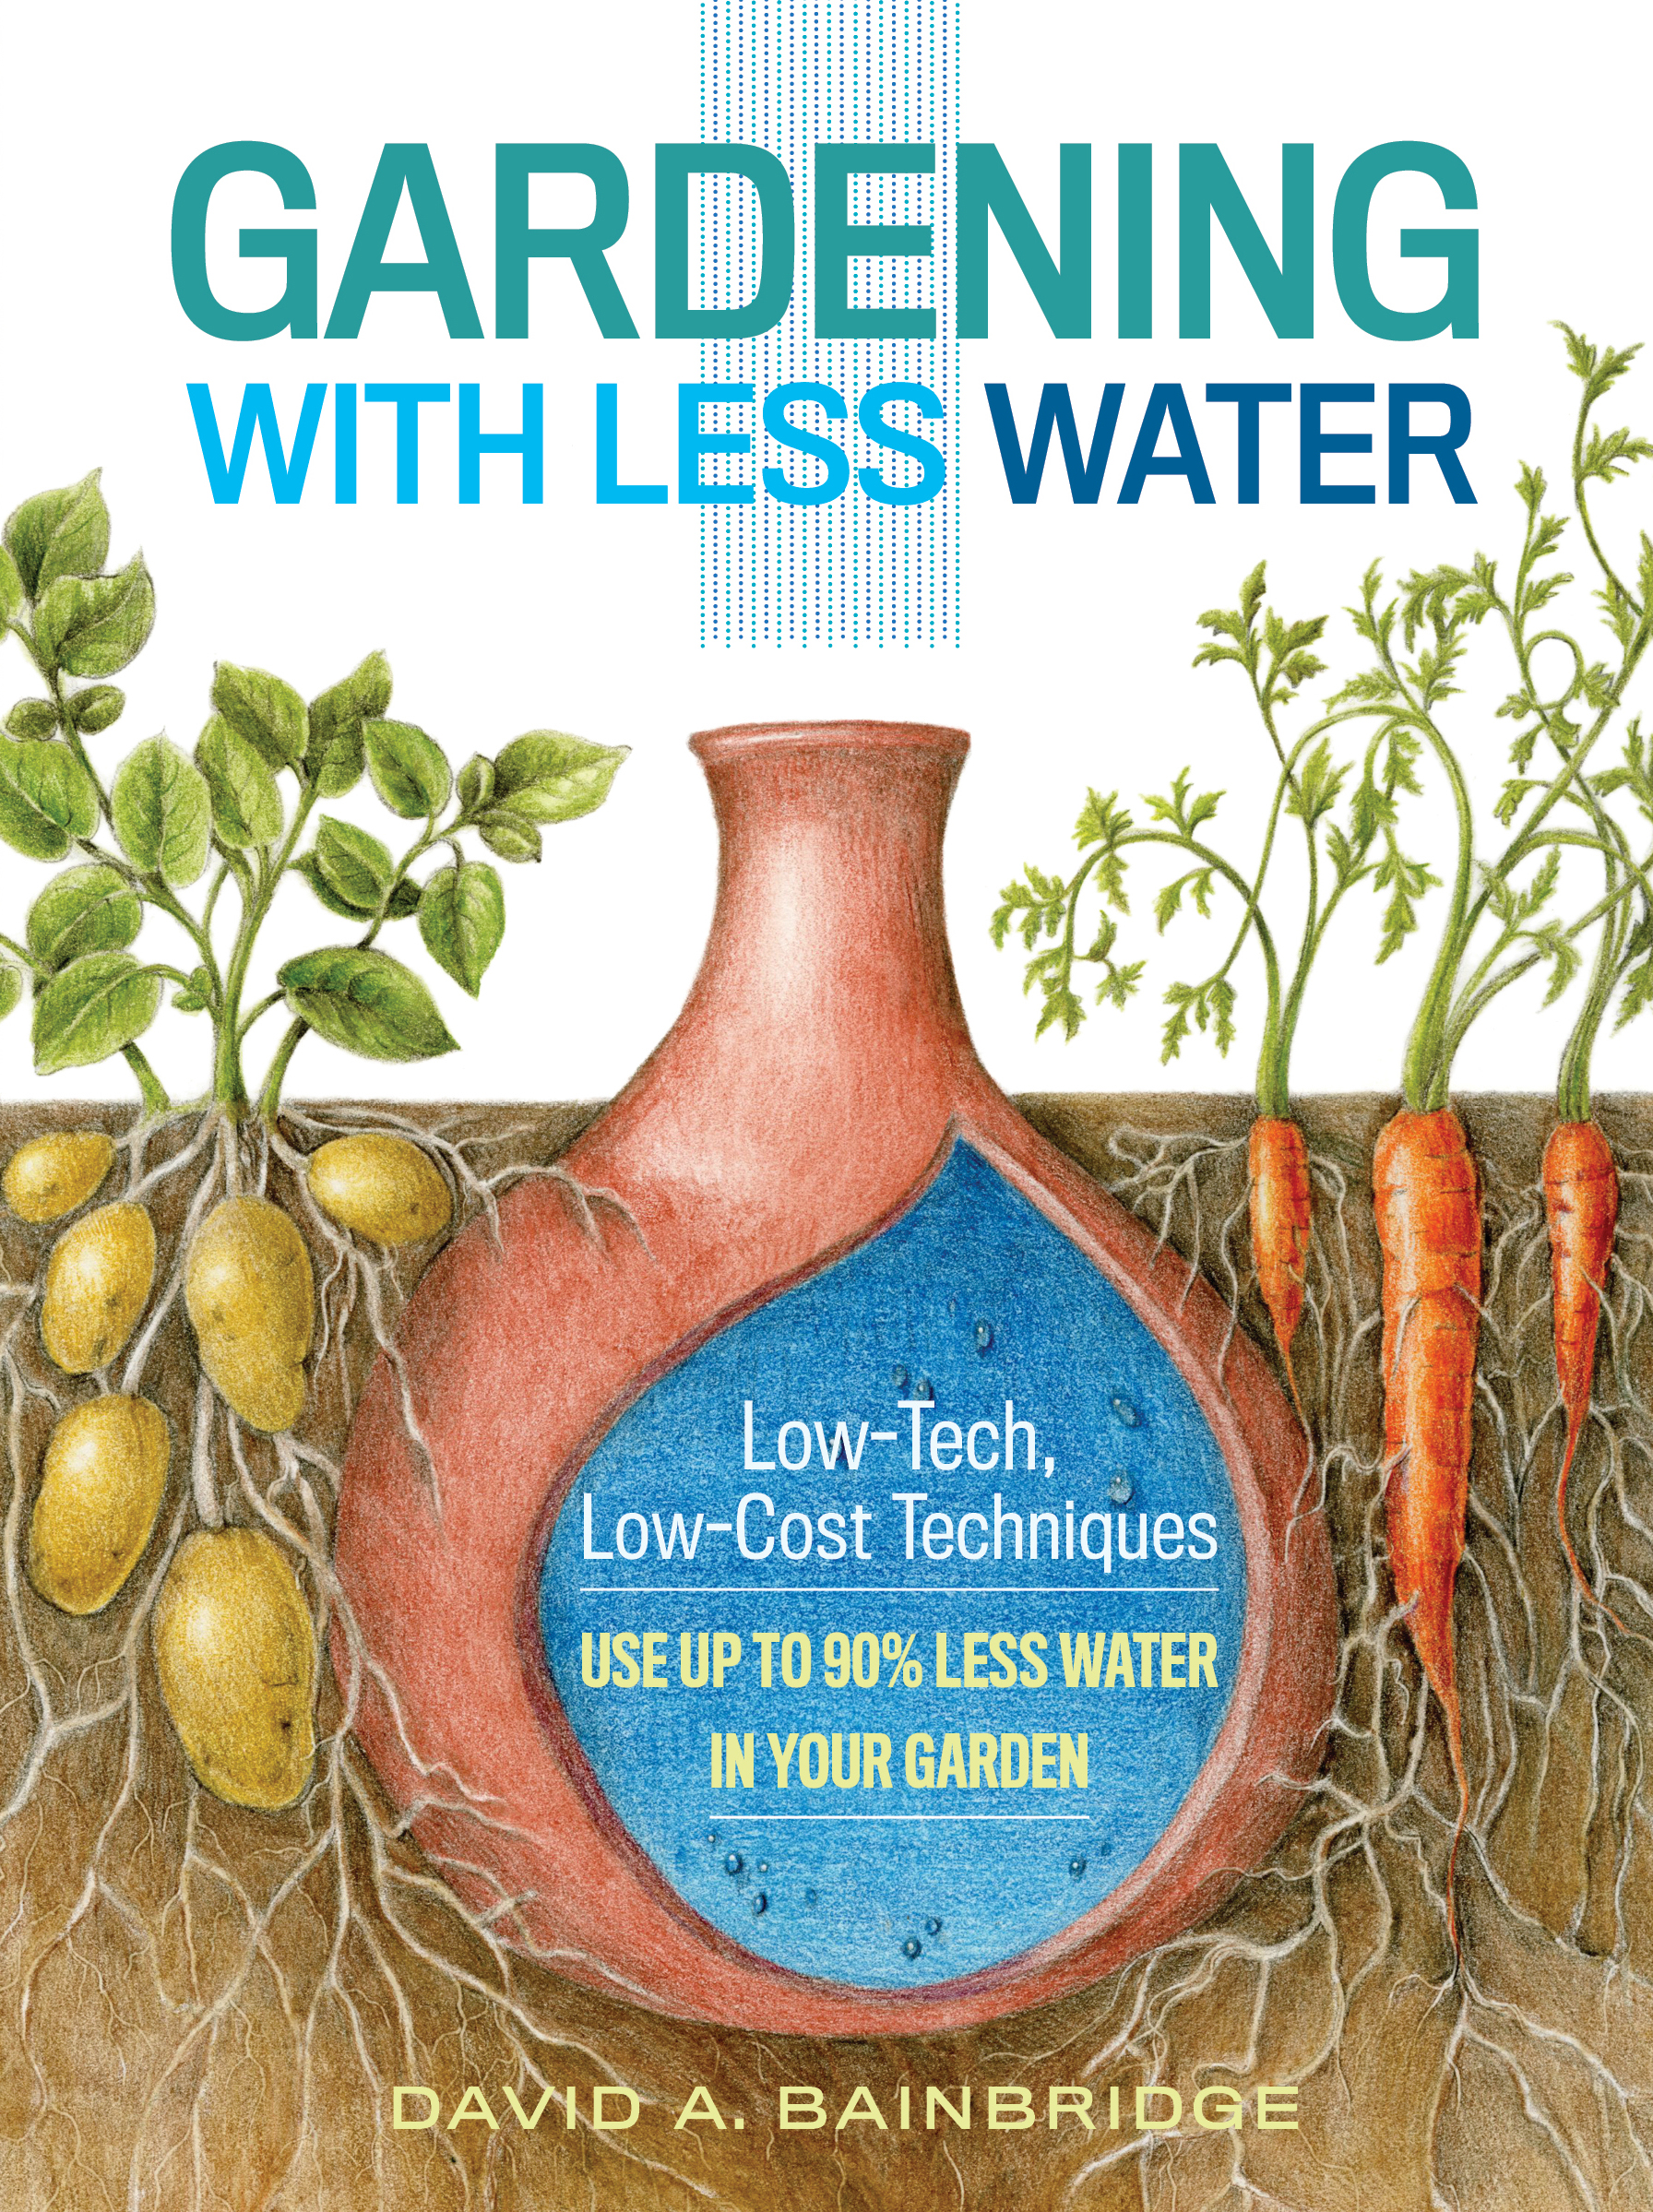 Gardening with Less Water Low-Tech, Low-Cost Techniques; Use up to 90% Less Water in Your Garden - David A. Bainbridge